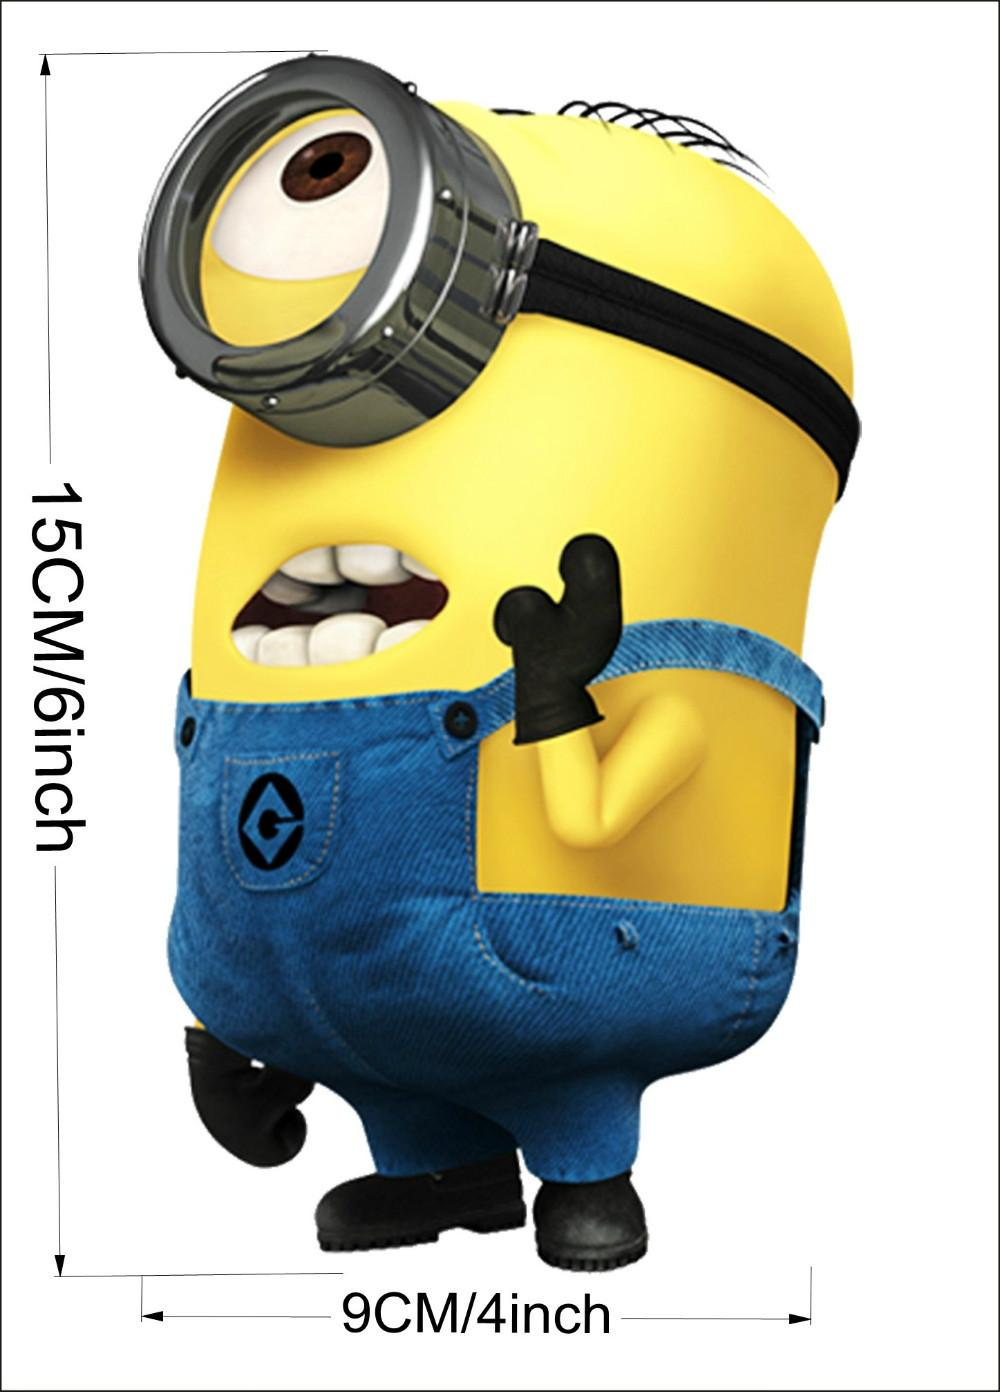 Minions Bedroom Wallpaper Despicable Me 2 Cute Minions Wall Stickers For Switch Notebook